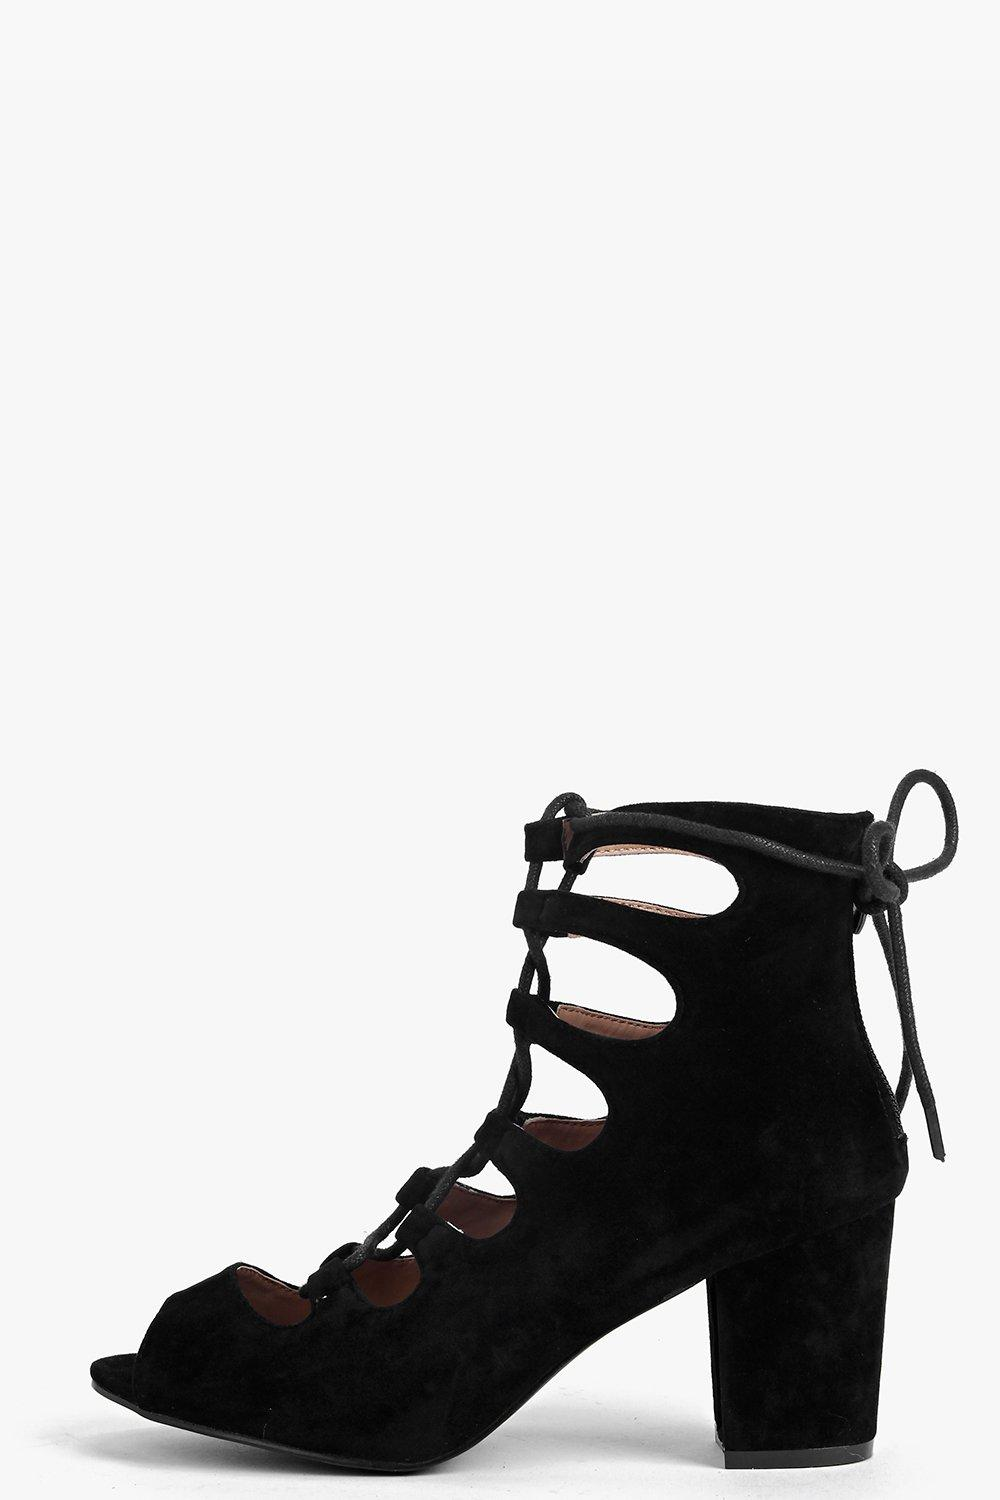 Alice Suedette Lace Up Mid Block Heel Shoe